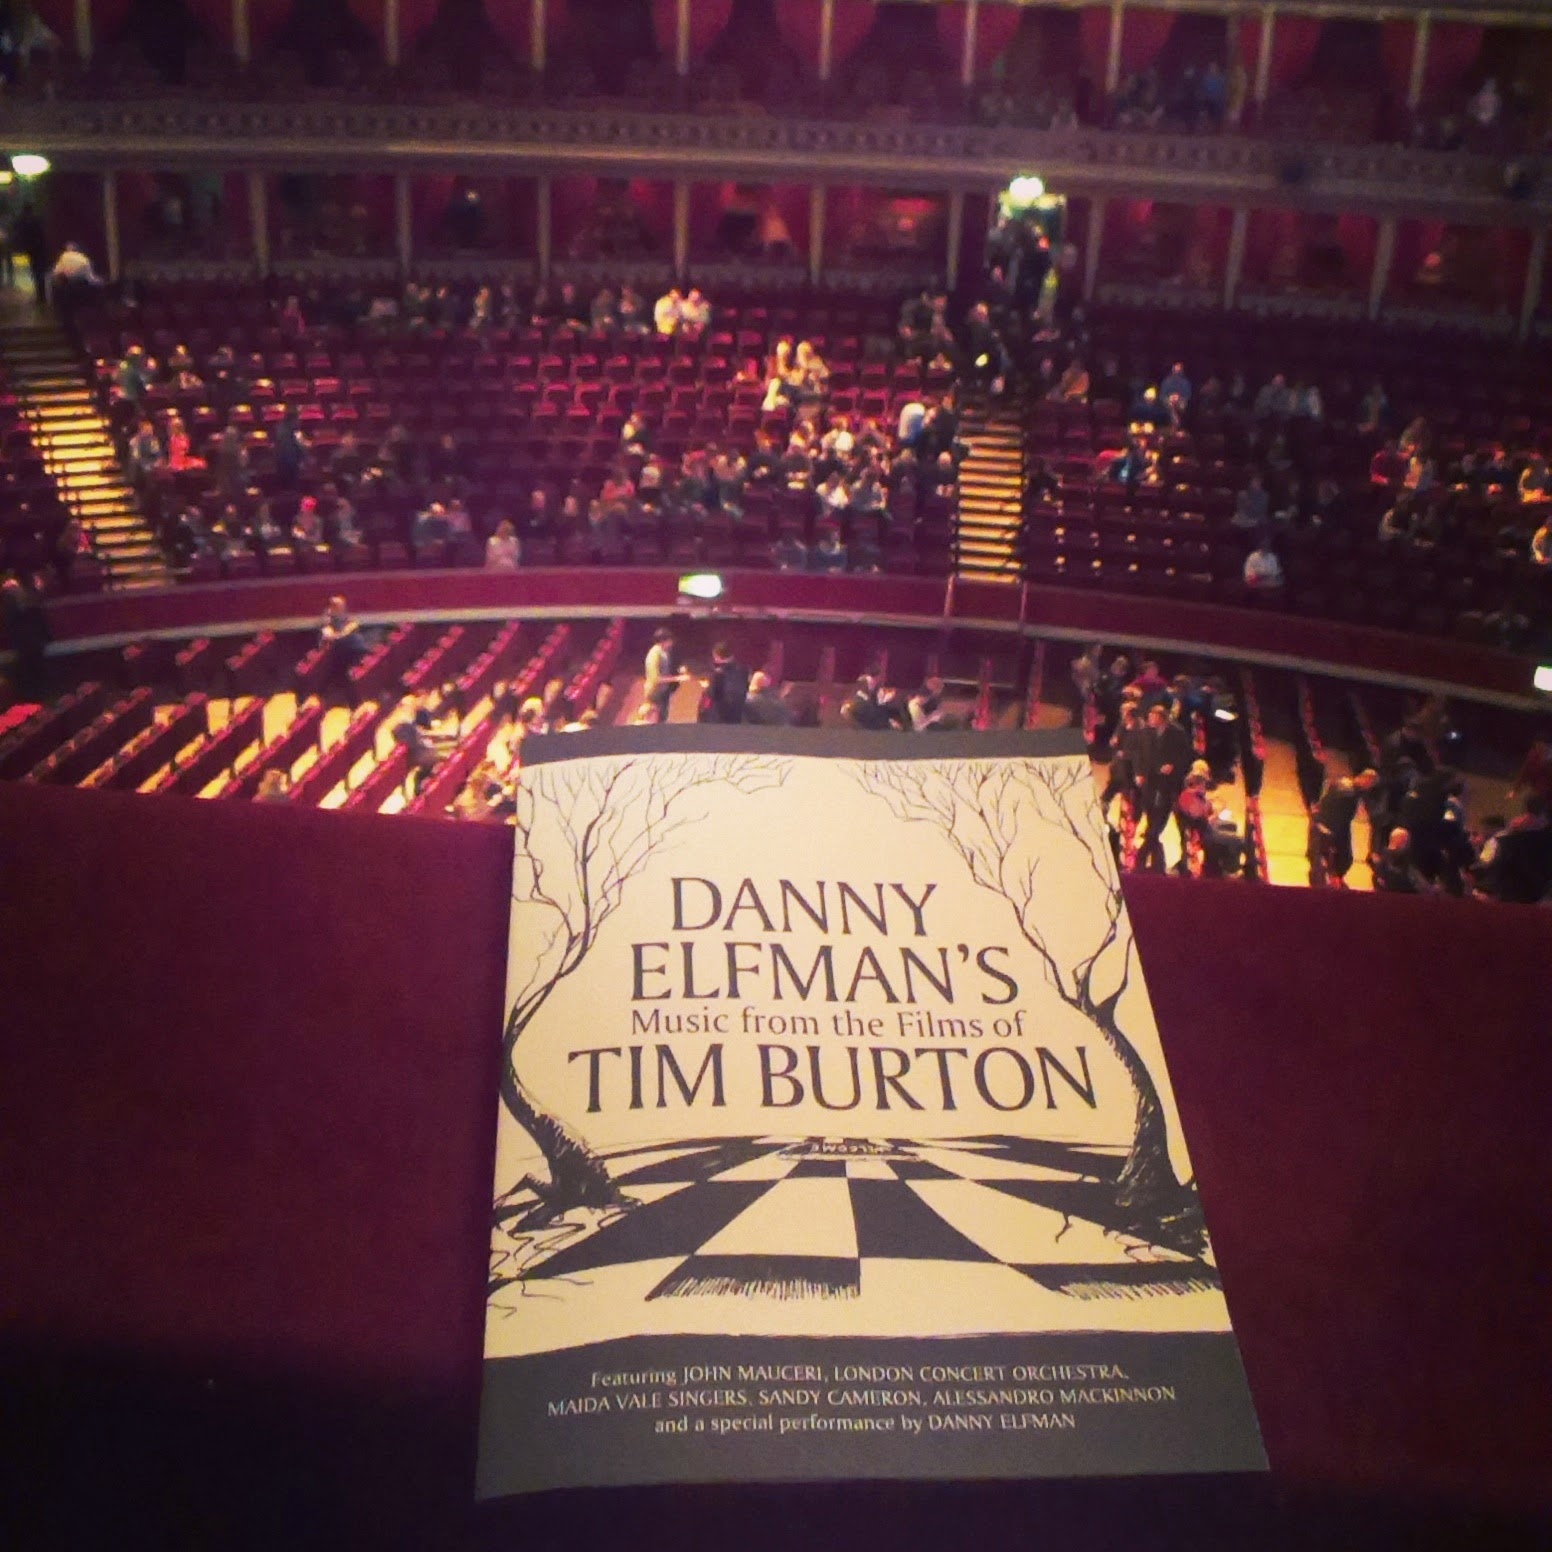 Royal Albert Hall - Danny Elfman's Music from the films of Tim Burton